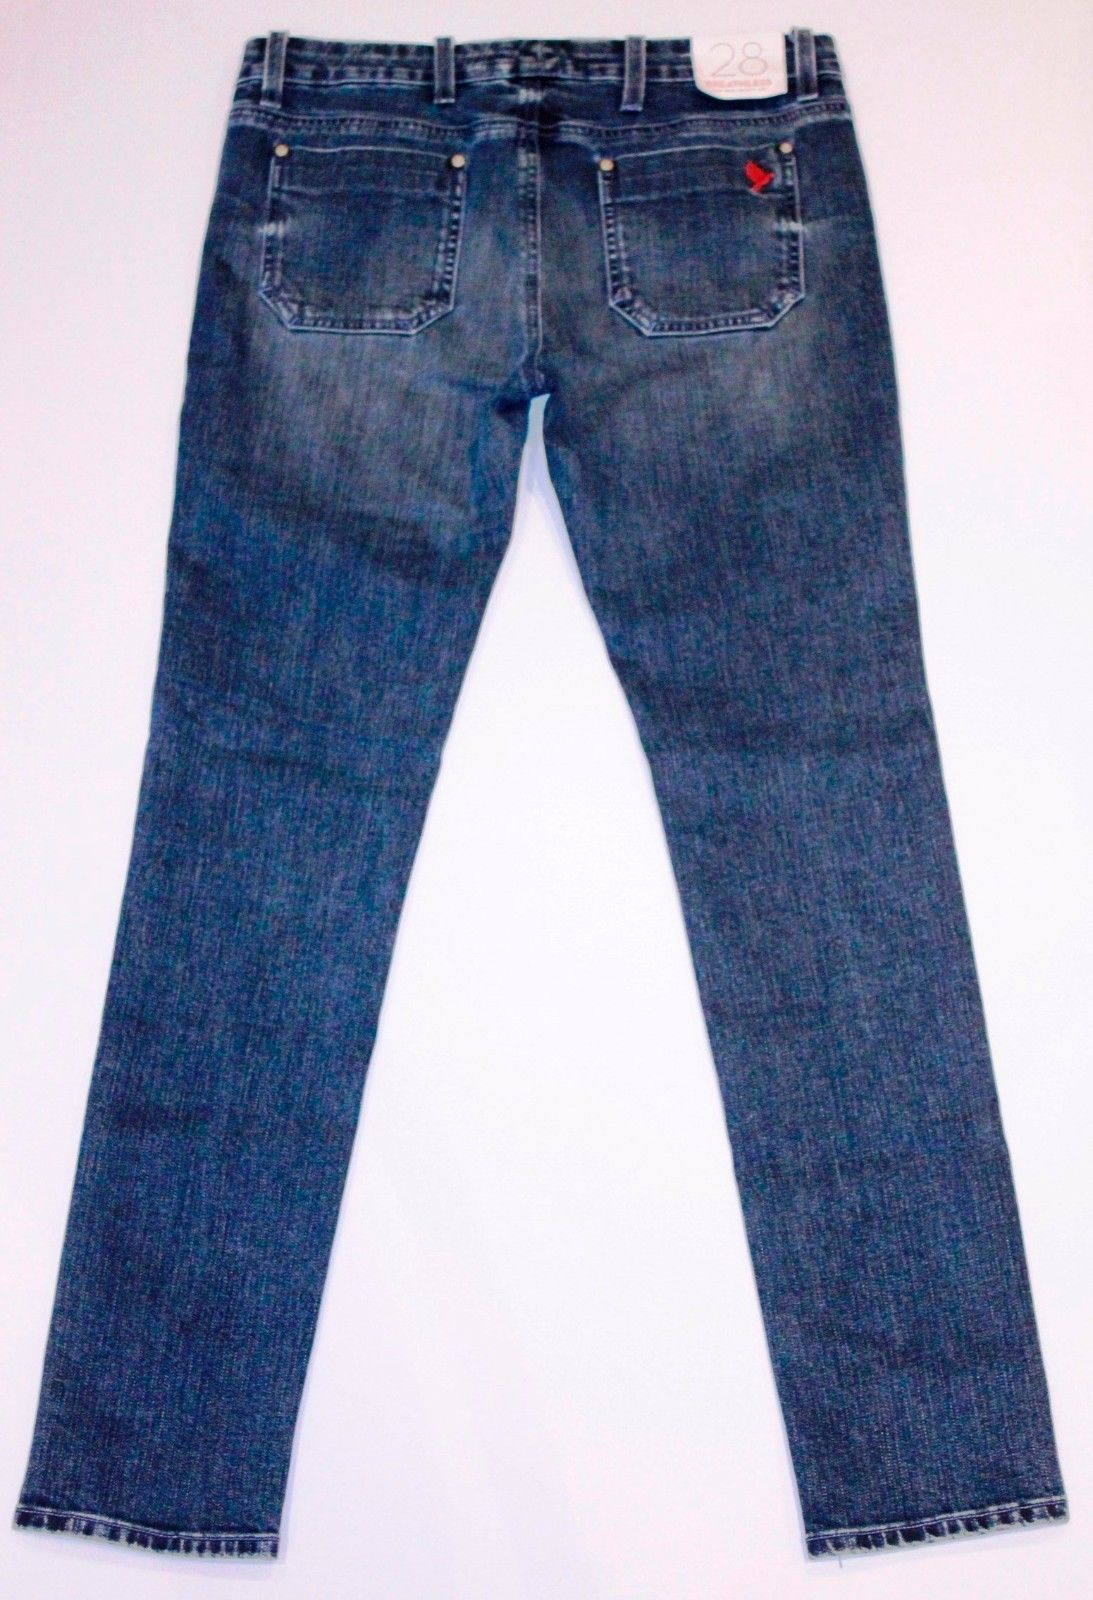 MIH JEANS BREATHLESS RAIL LOW RISE SKINNY LEG STRETCH DENIM WORN EFFECT ITALY 28